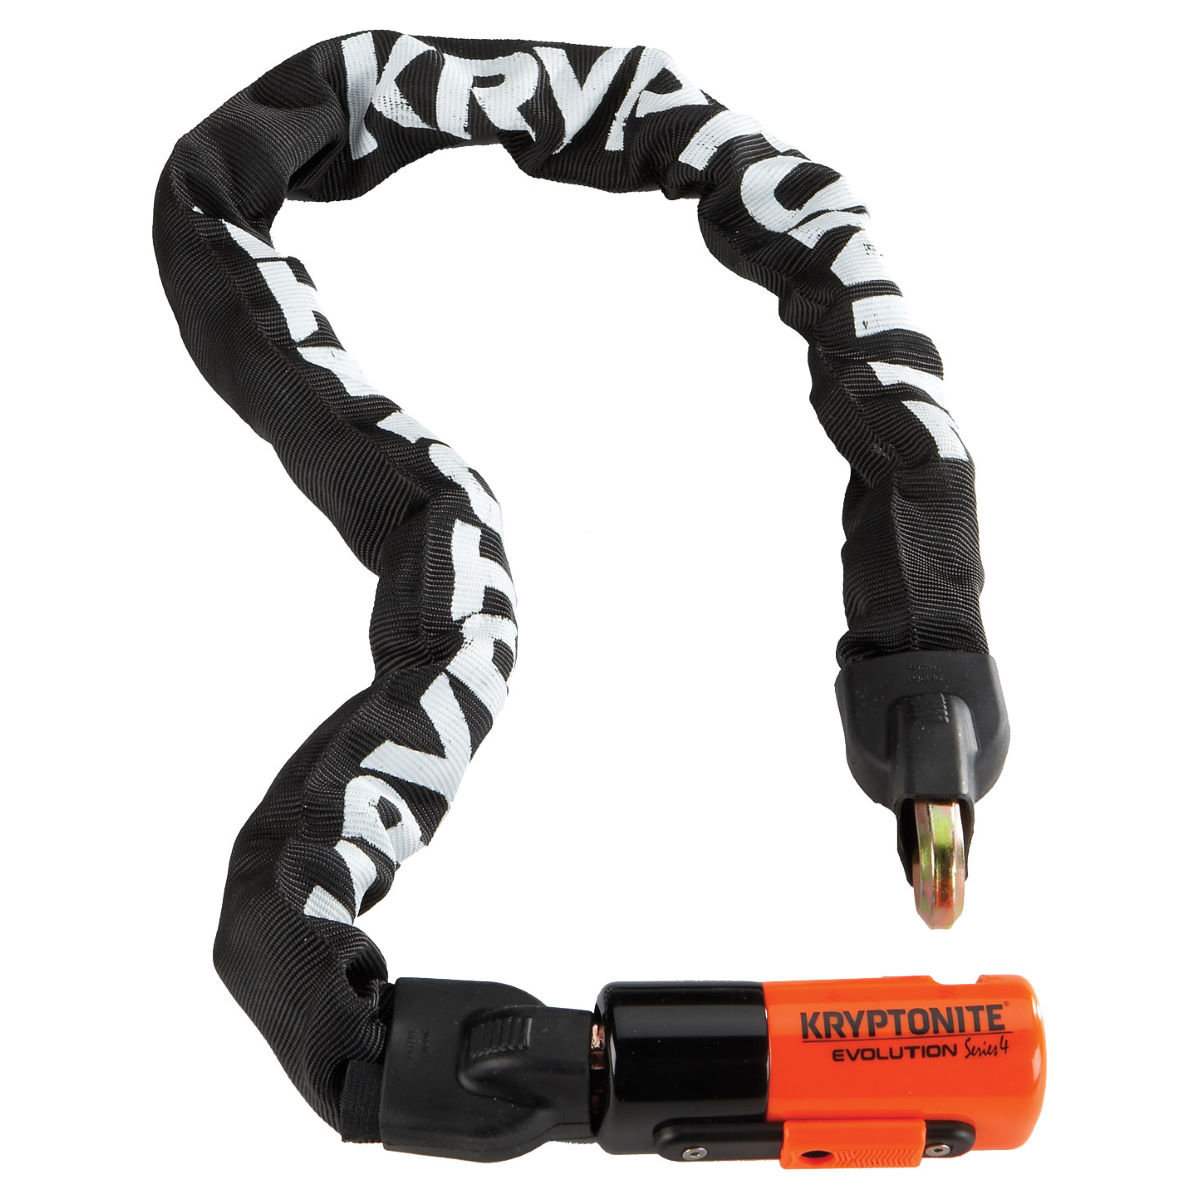 Antivol Kryptonite Evolution Series 4 (chaîne intégrée) - Noir/Orange